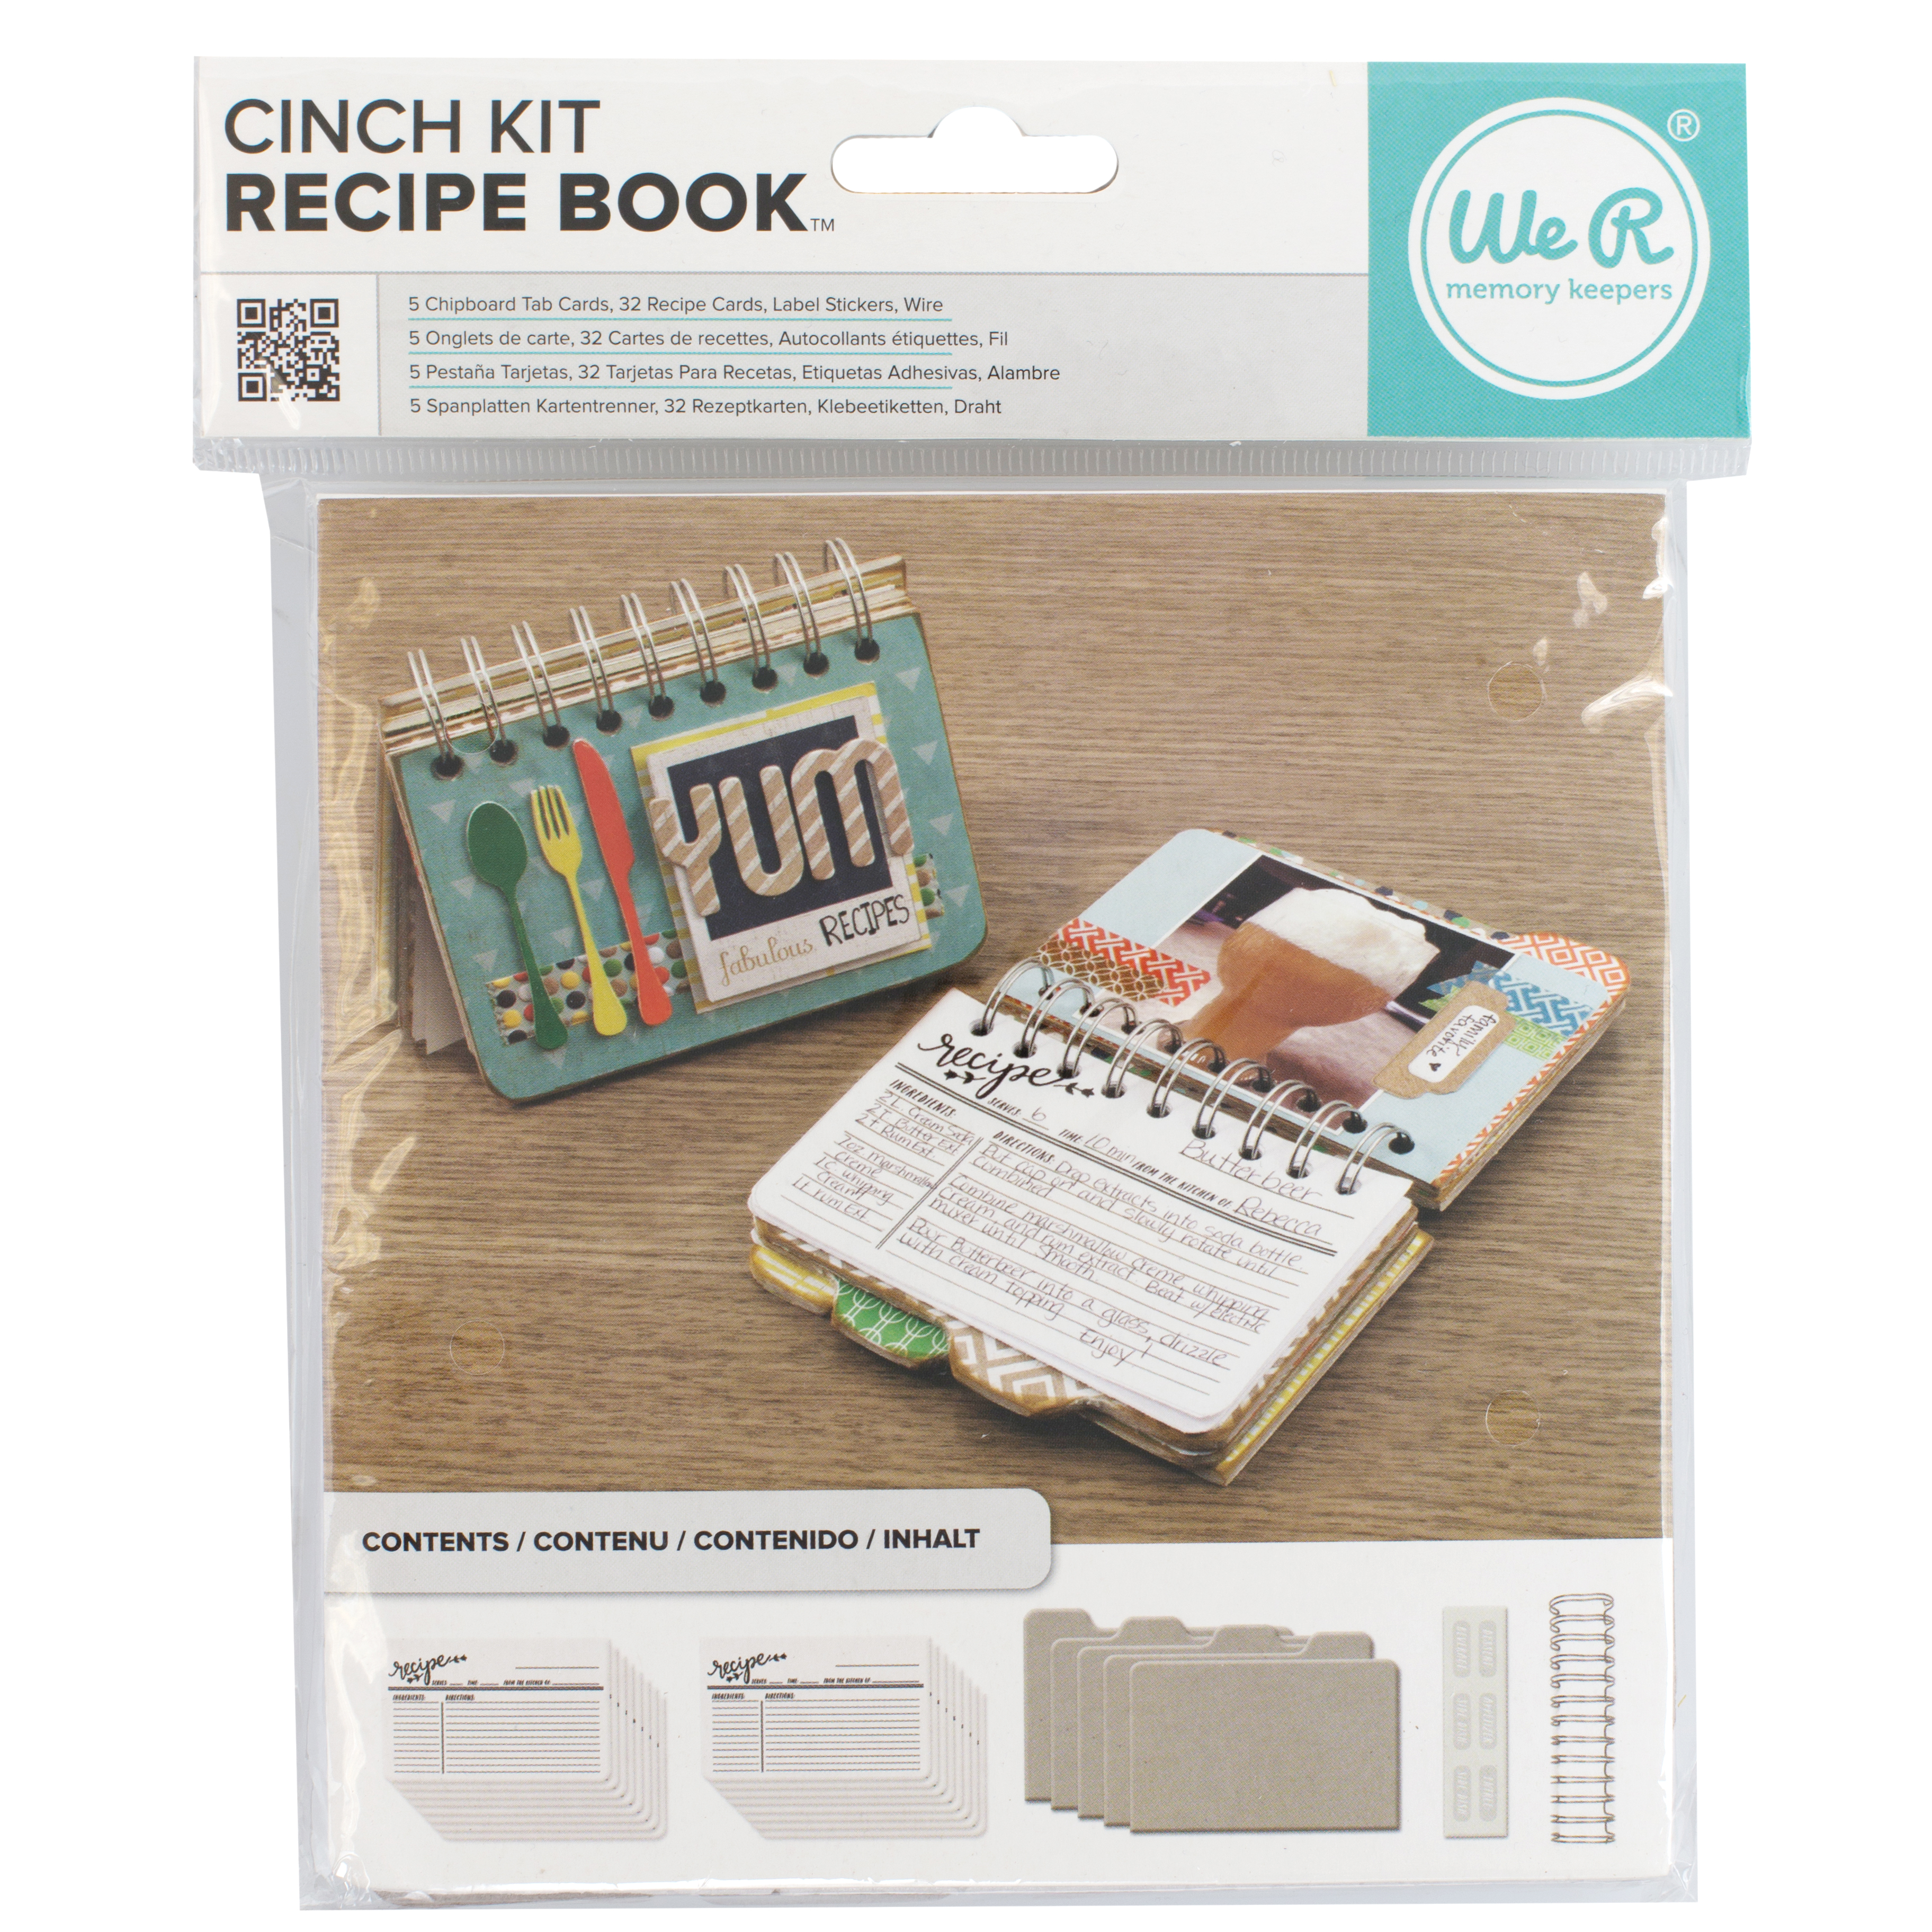 Home GIFT GUIDE Under 15 Cinch Kit Recipe Book